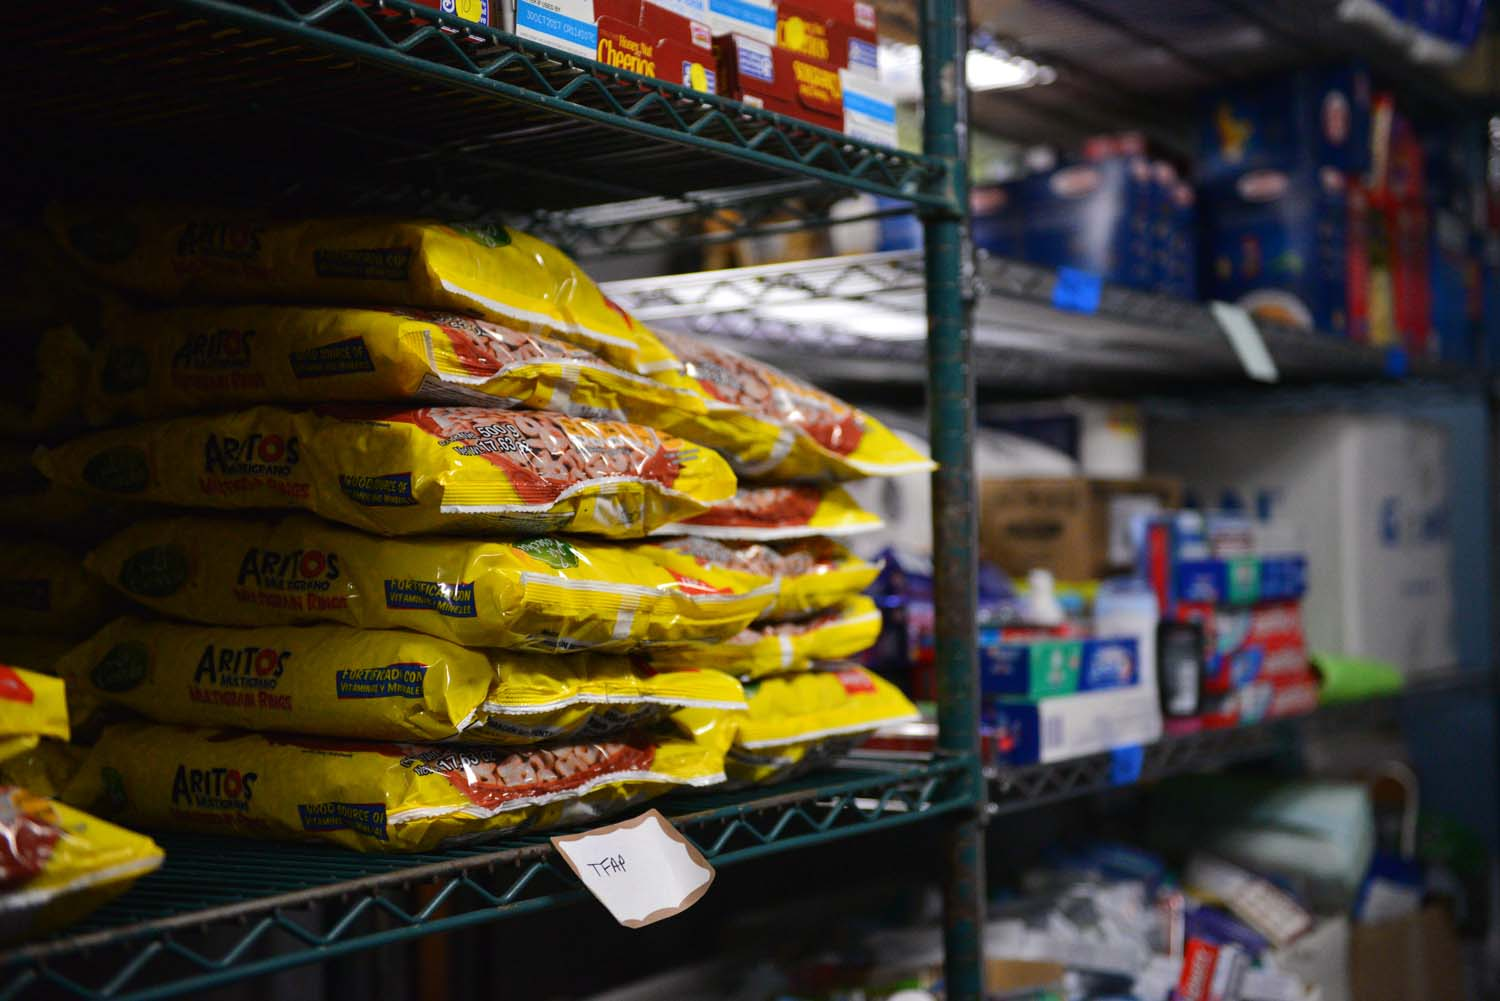 The USDA recently proposed changes to the Supplemental Nutrition Program that could reduce access to food stamps and similar services.